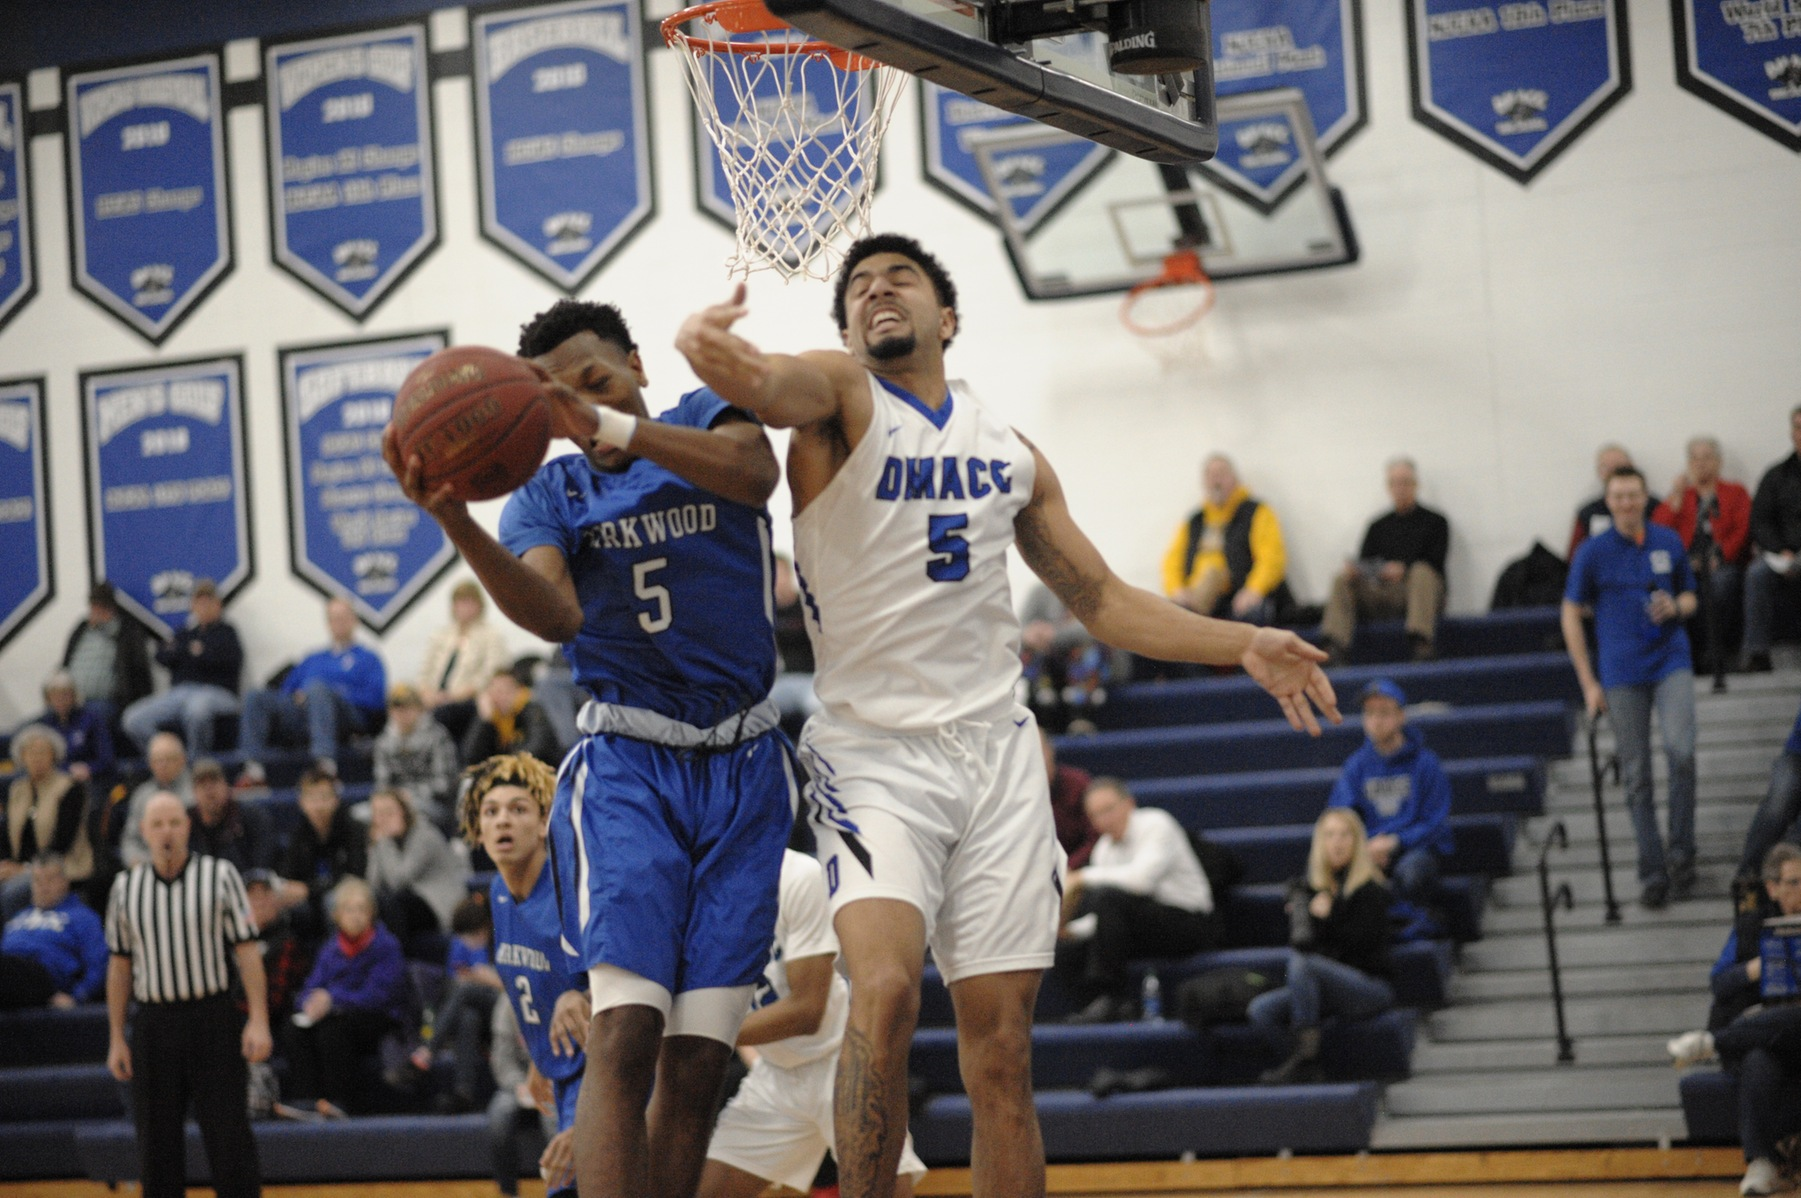 DMACC men's basketball team falls to Kirkwood, 94-78